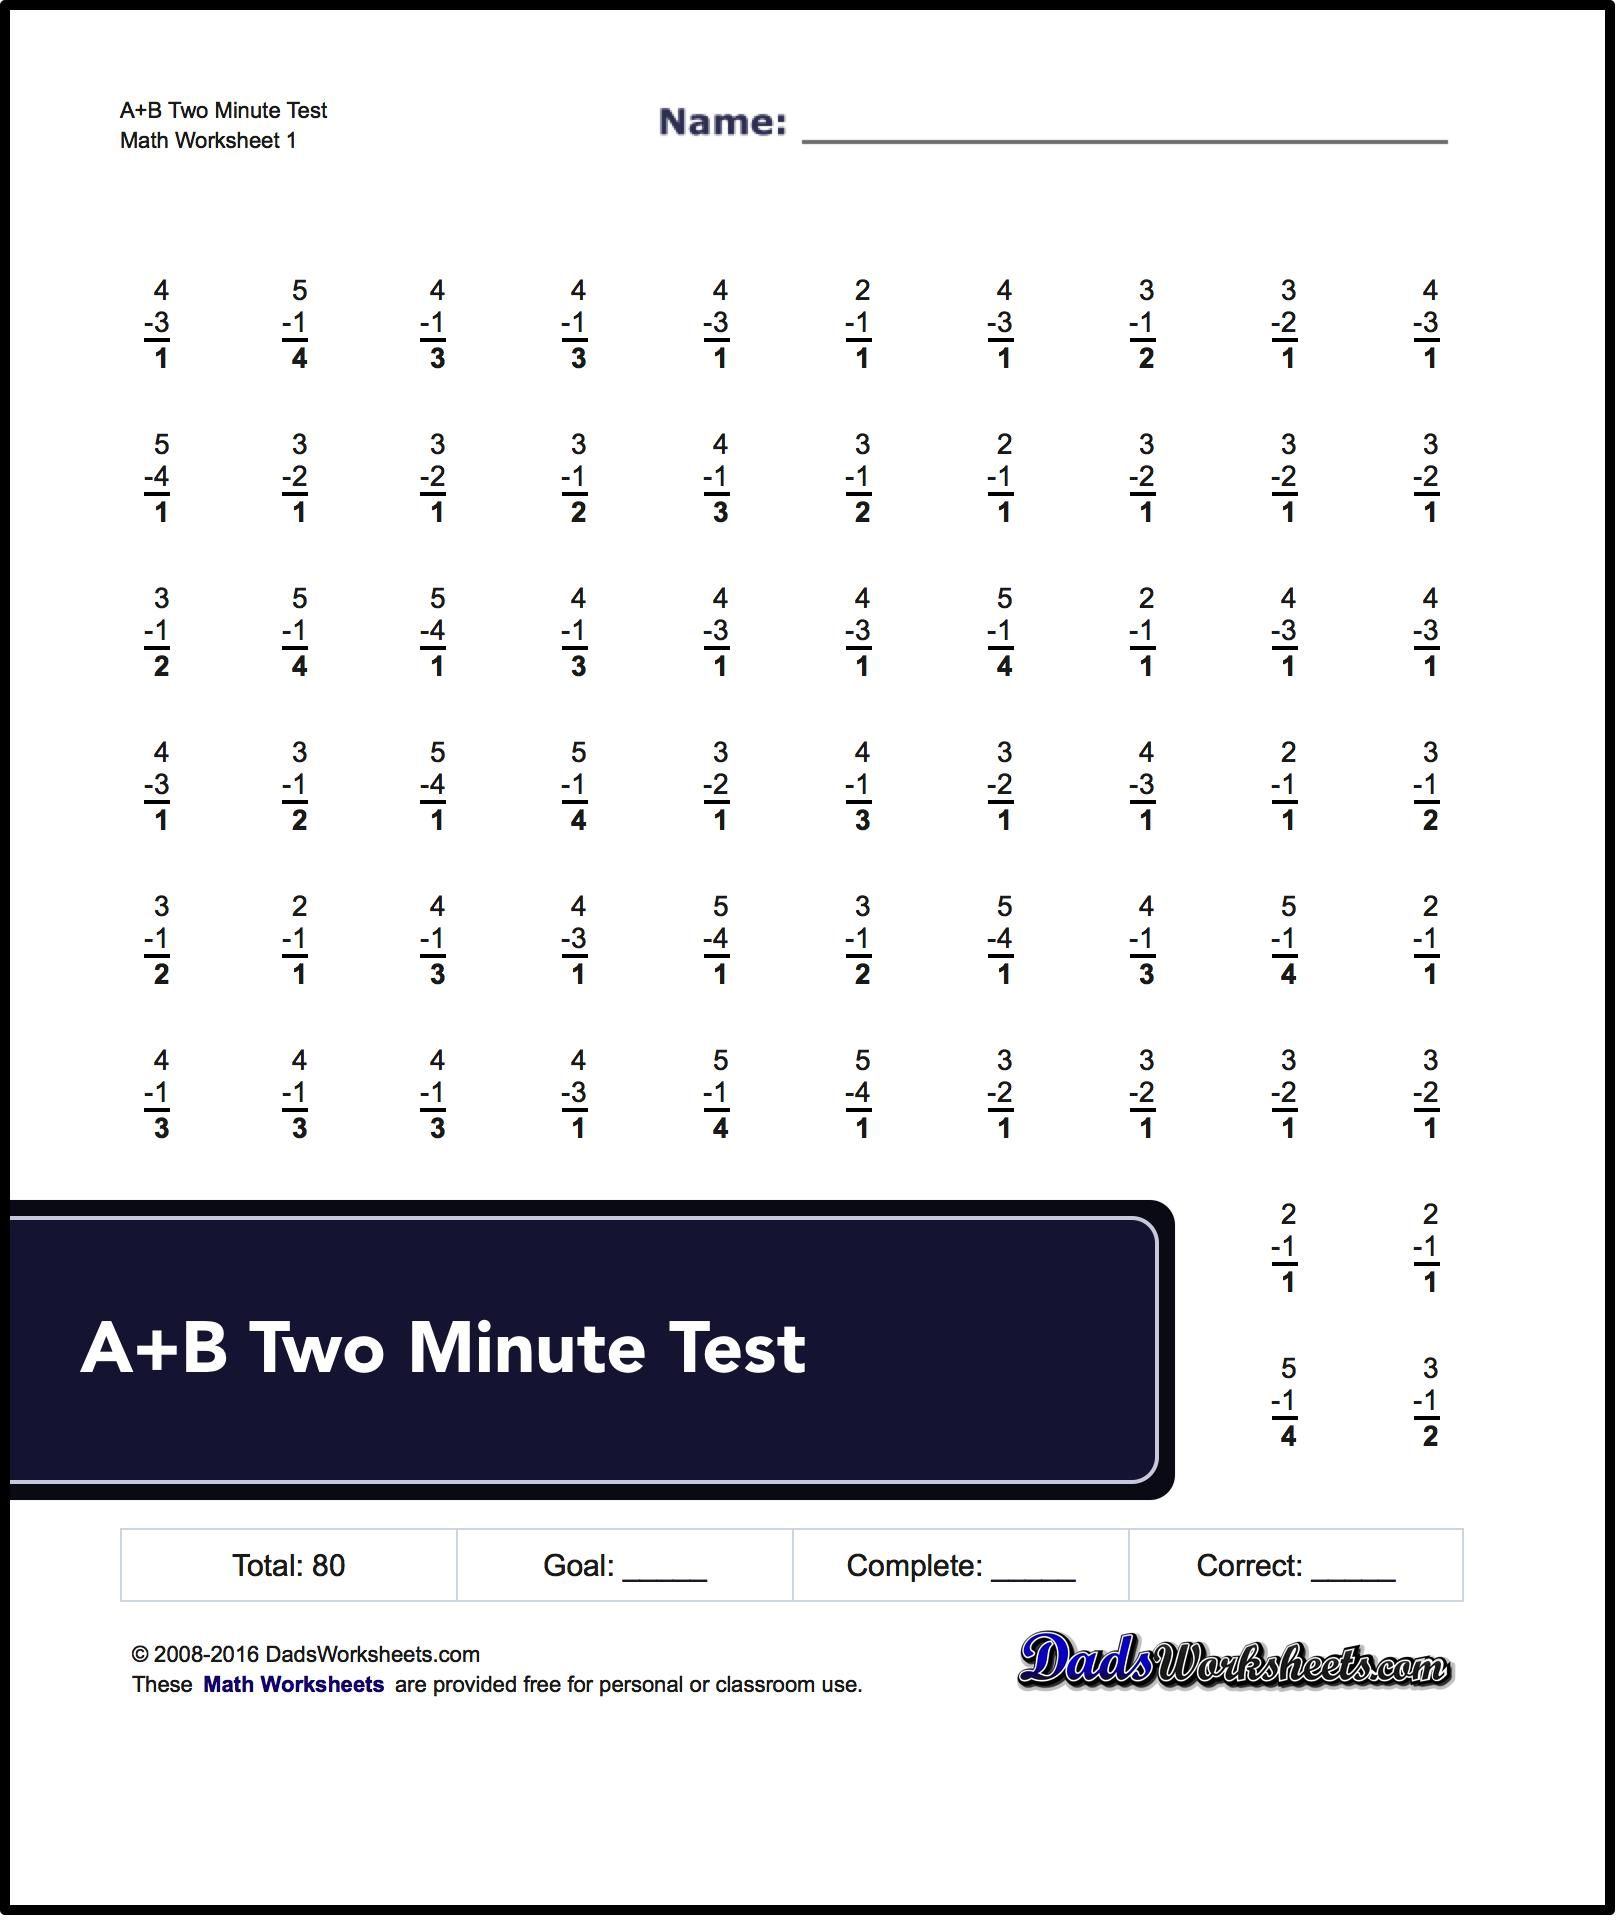 worksheet Timed Addition Test two minute versions of the spaceship math subtraction worksheets 80 and 100 problem mathrocketmathmad timed multiplication worksheets